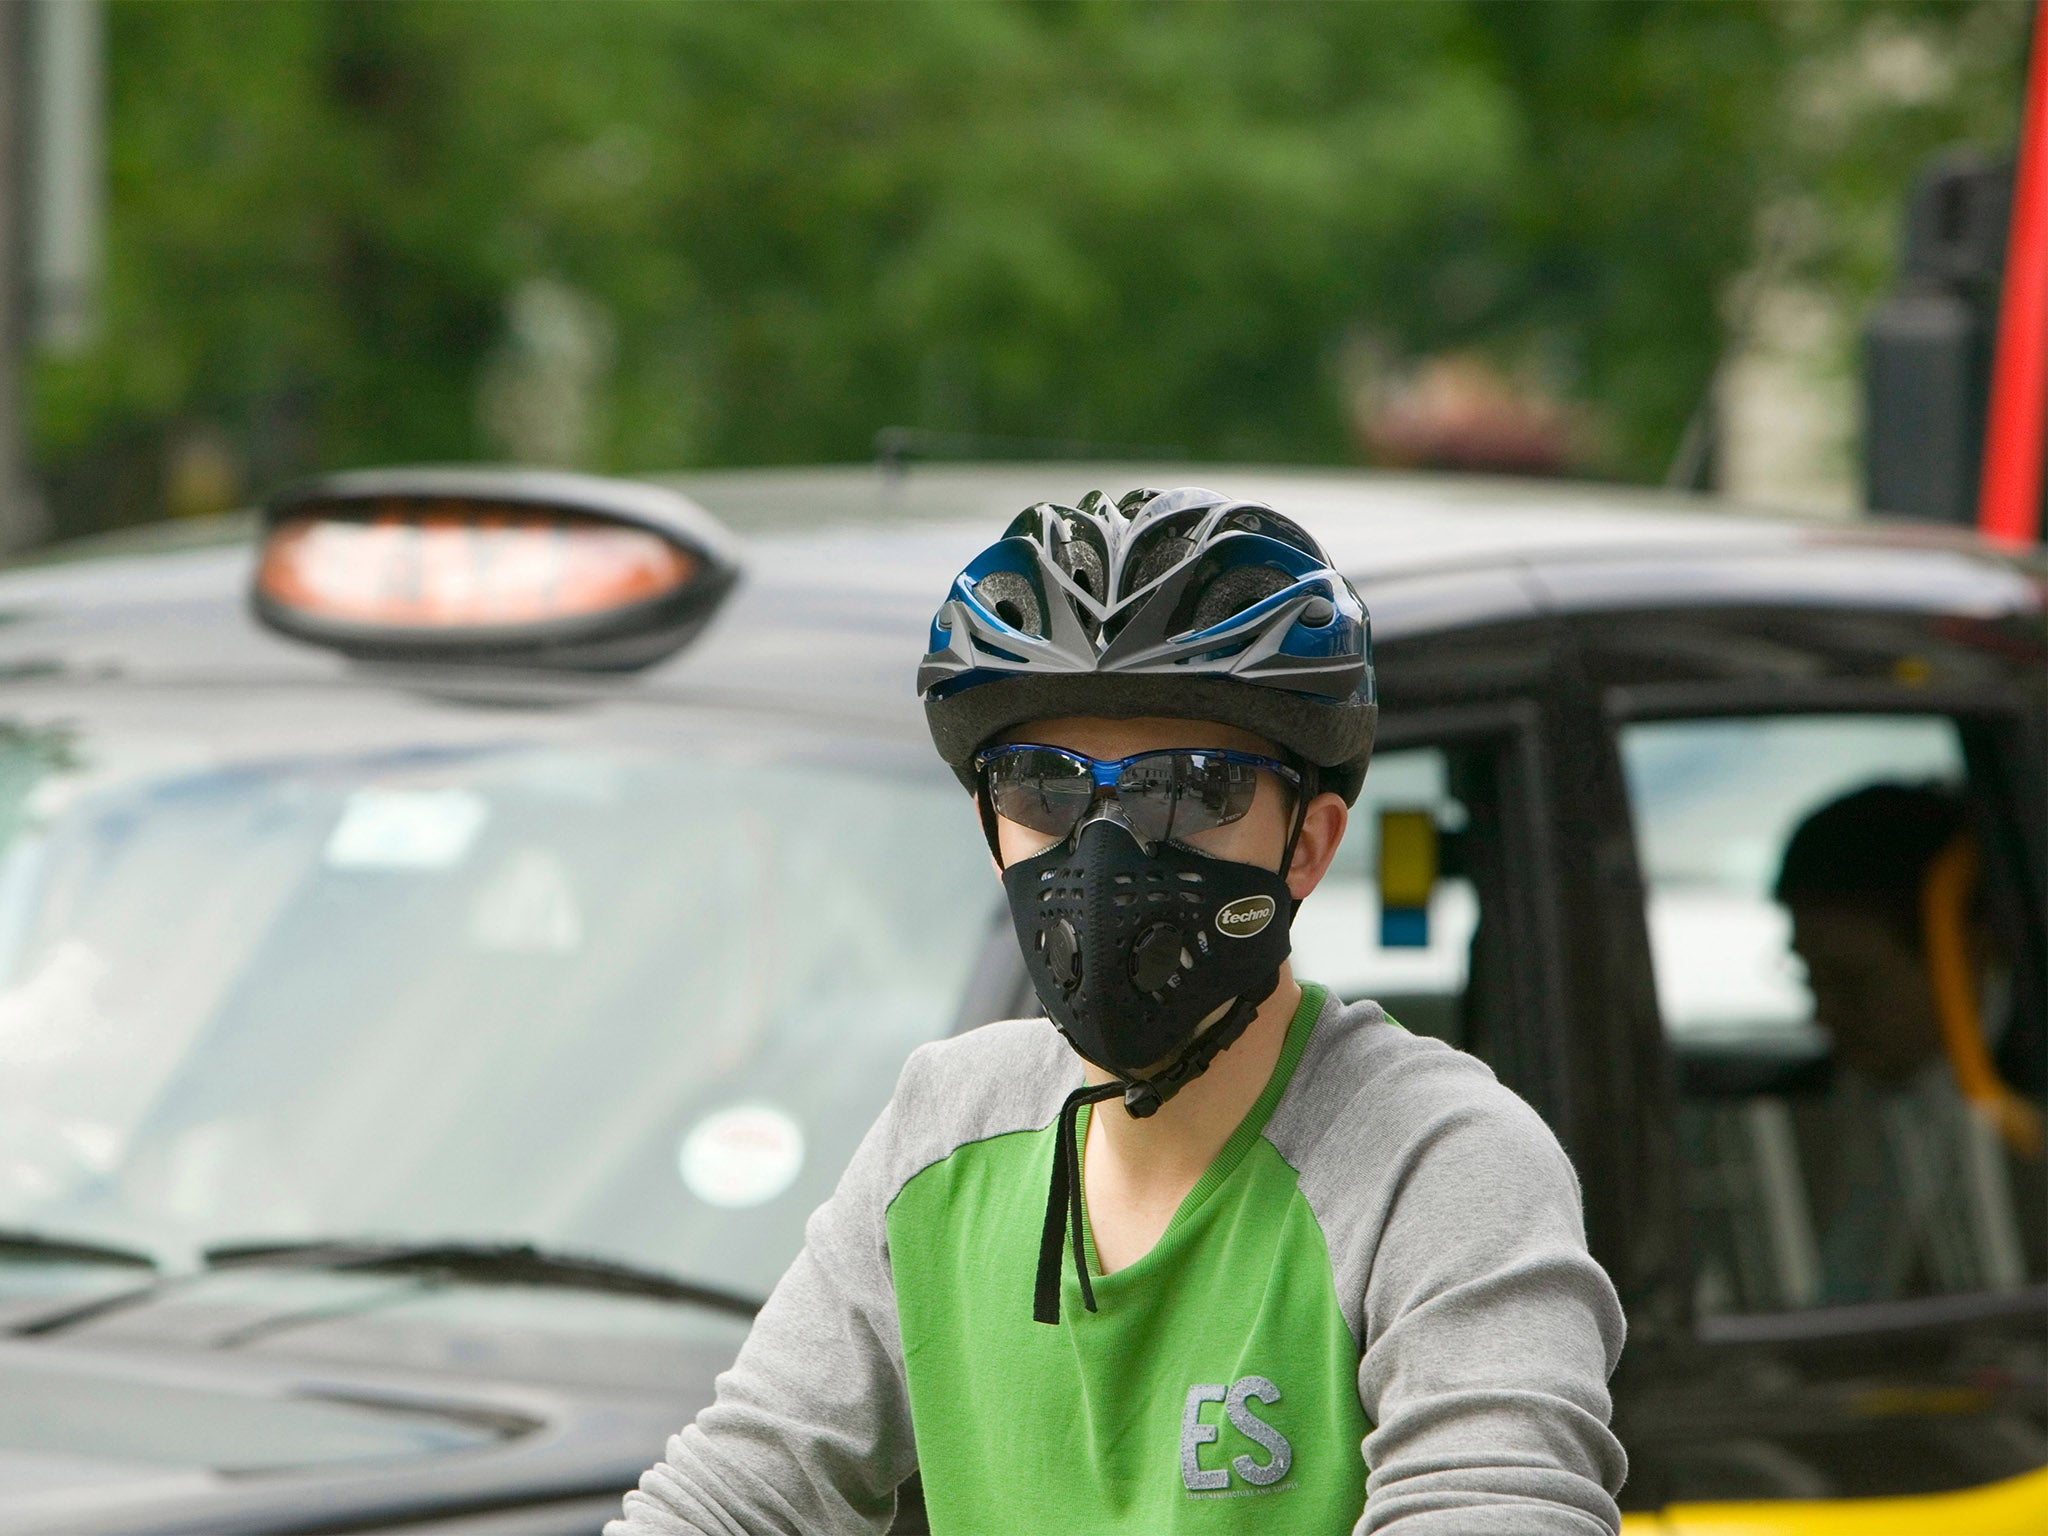 Clean Air Strategy What You Need To Know About The Uks Latest Disassembly Stock Photos Images Alamy Newer Vehicles Emit Less Pollution Than They Are Replacing